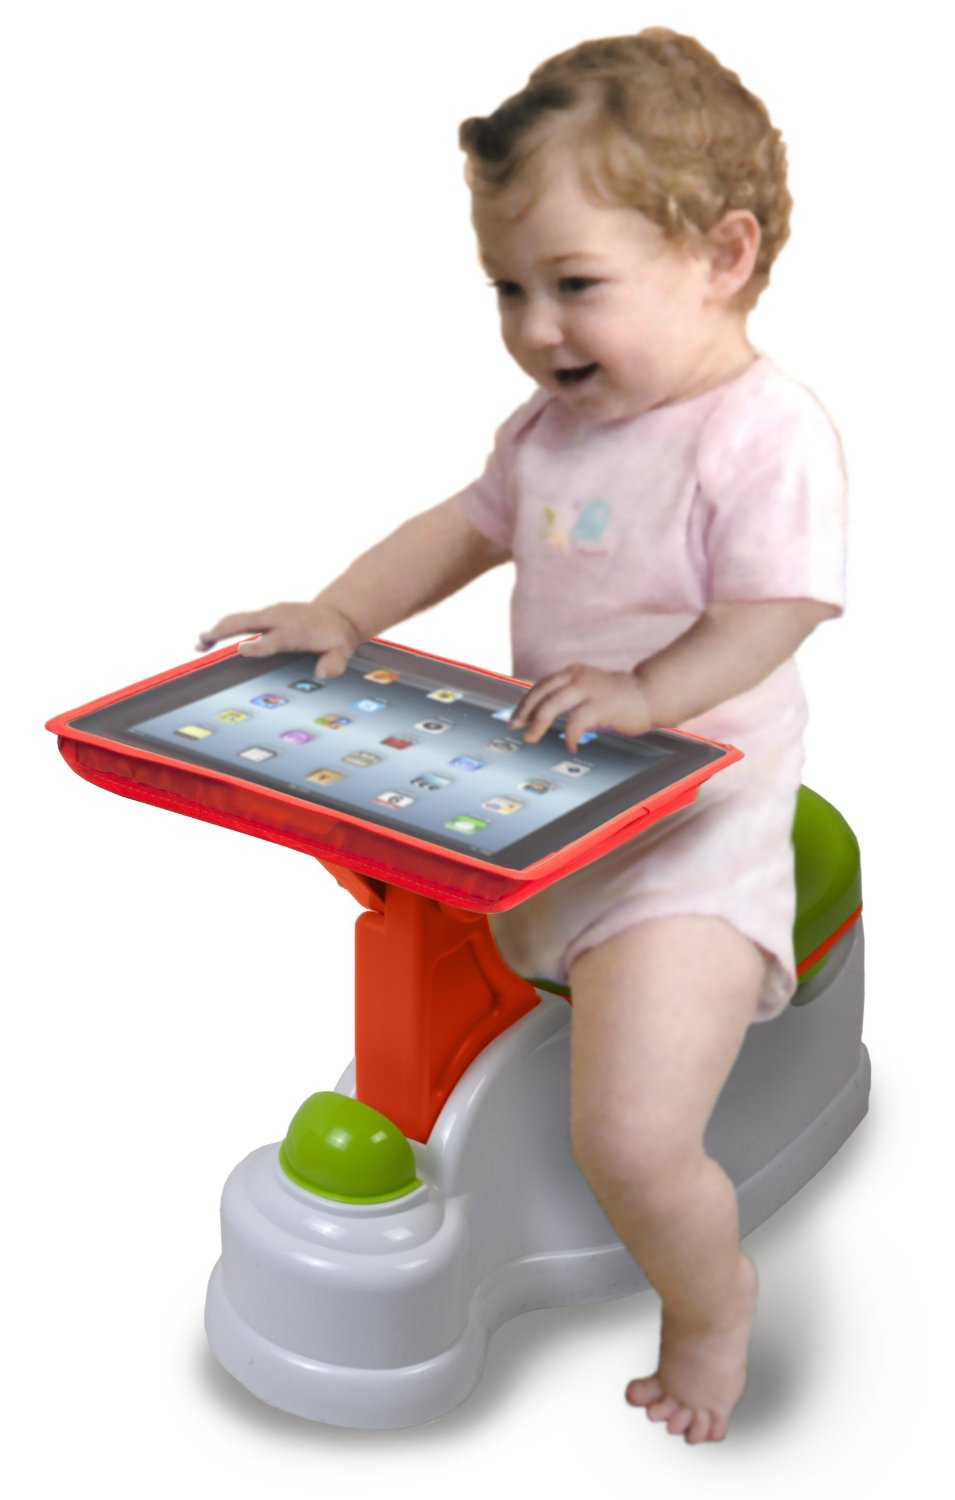 This iPad Child Potty Represents Everything Wrong With America